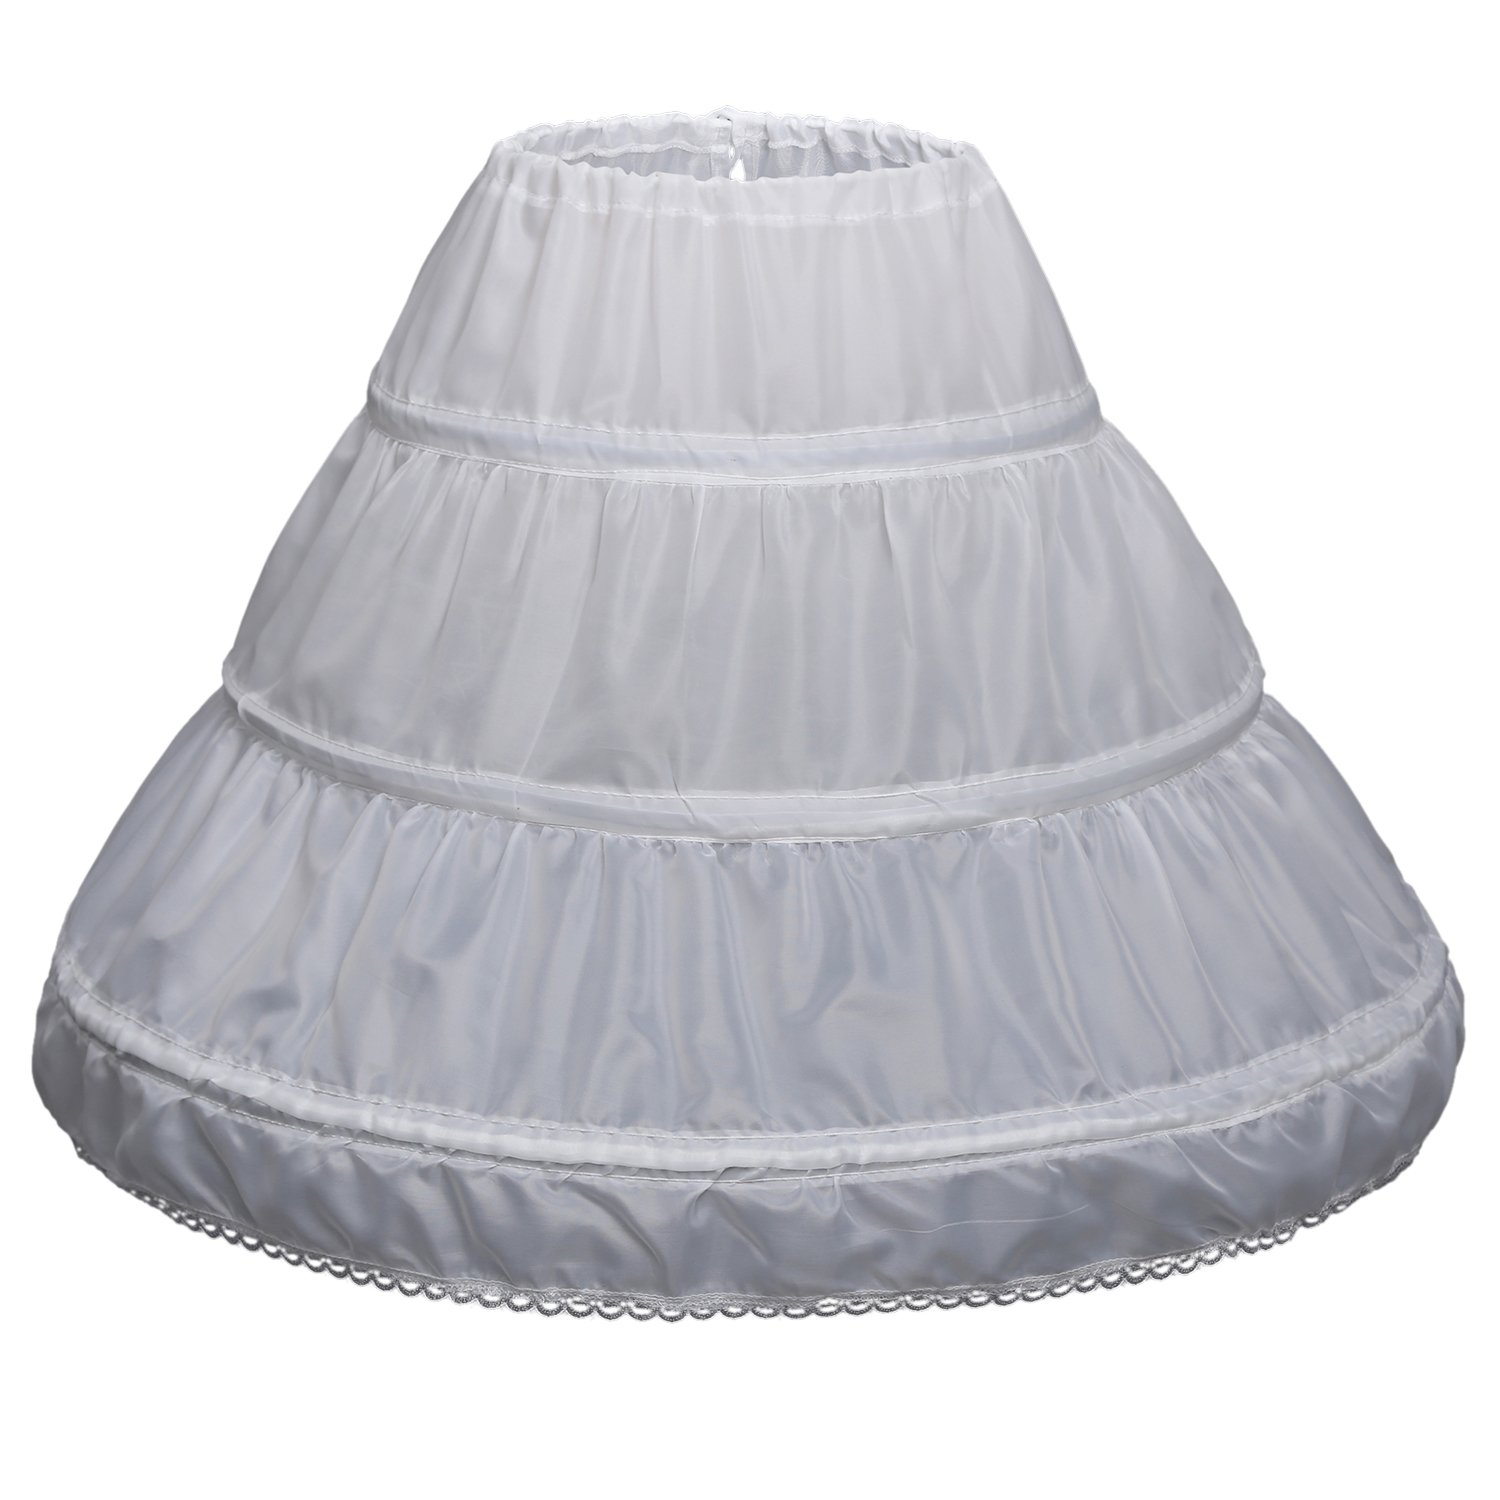 Girls' 3 Hoops Petticoat Full Slip Flower Girl Crinoline Skirt CH003